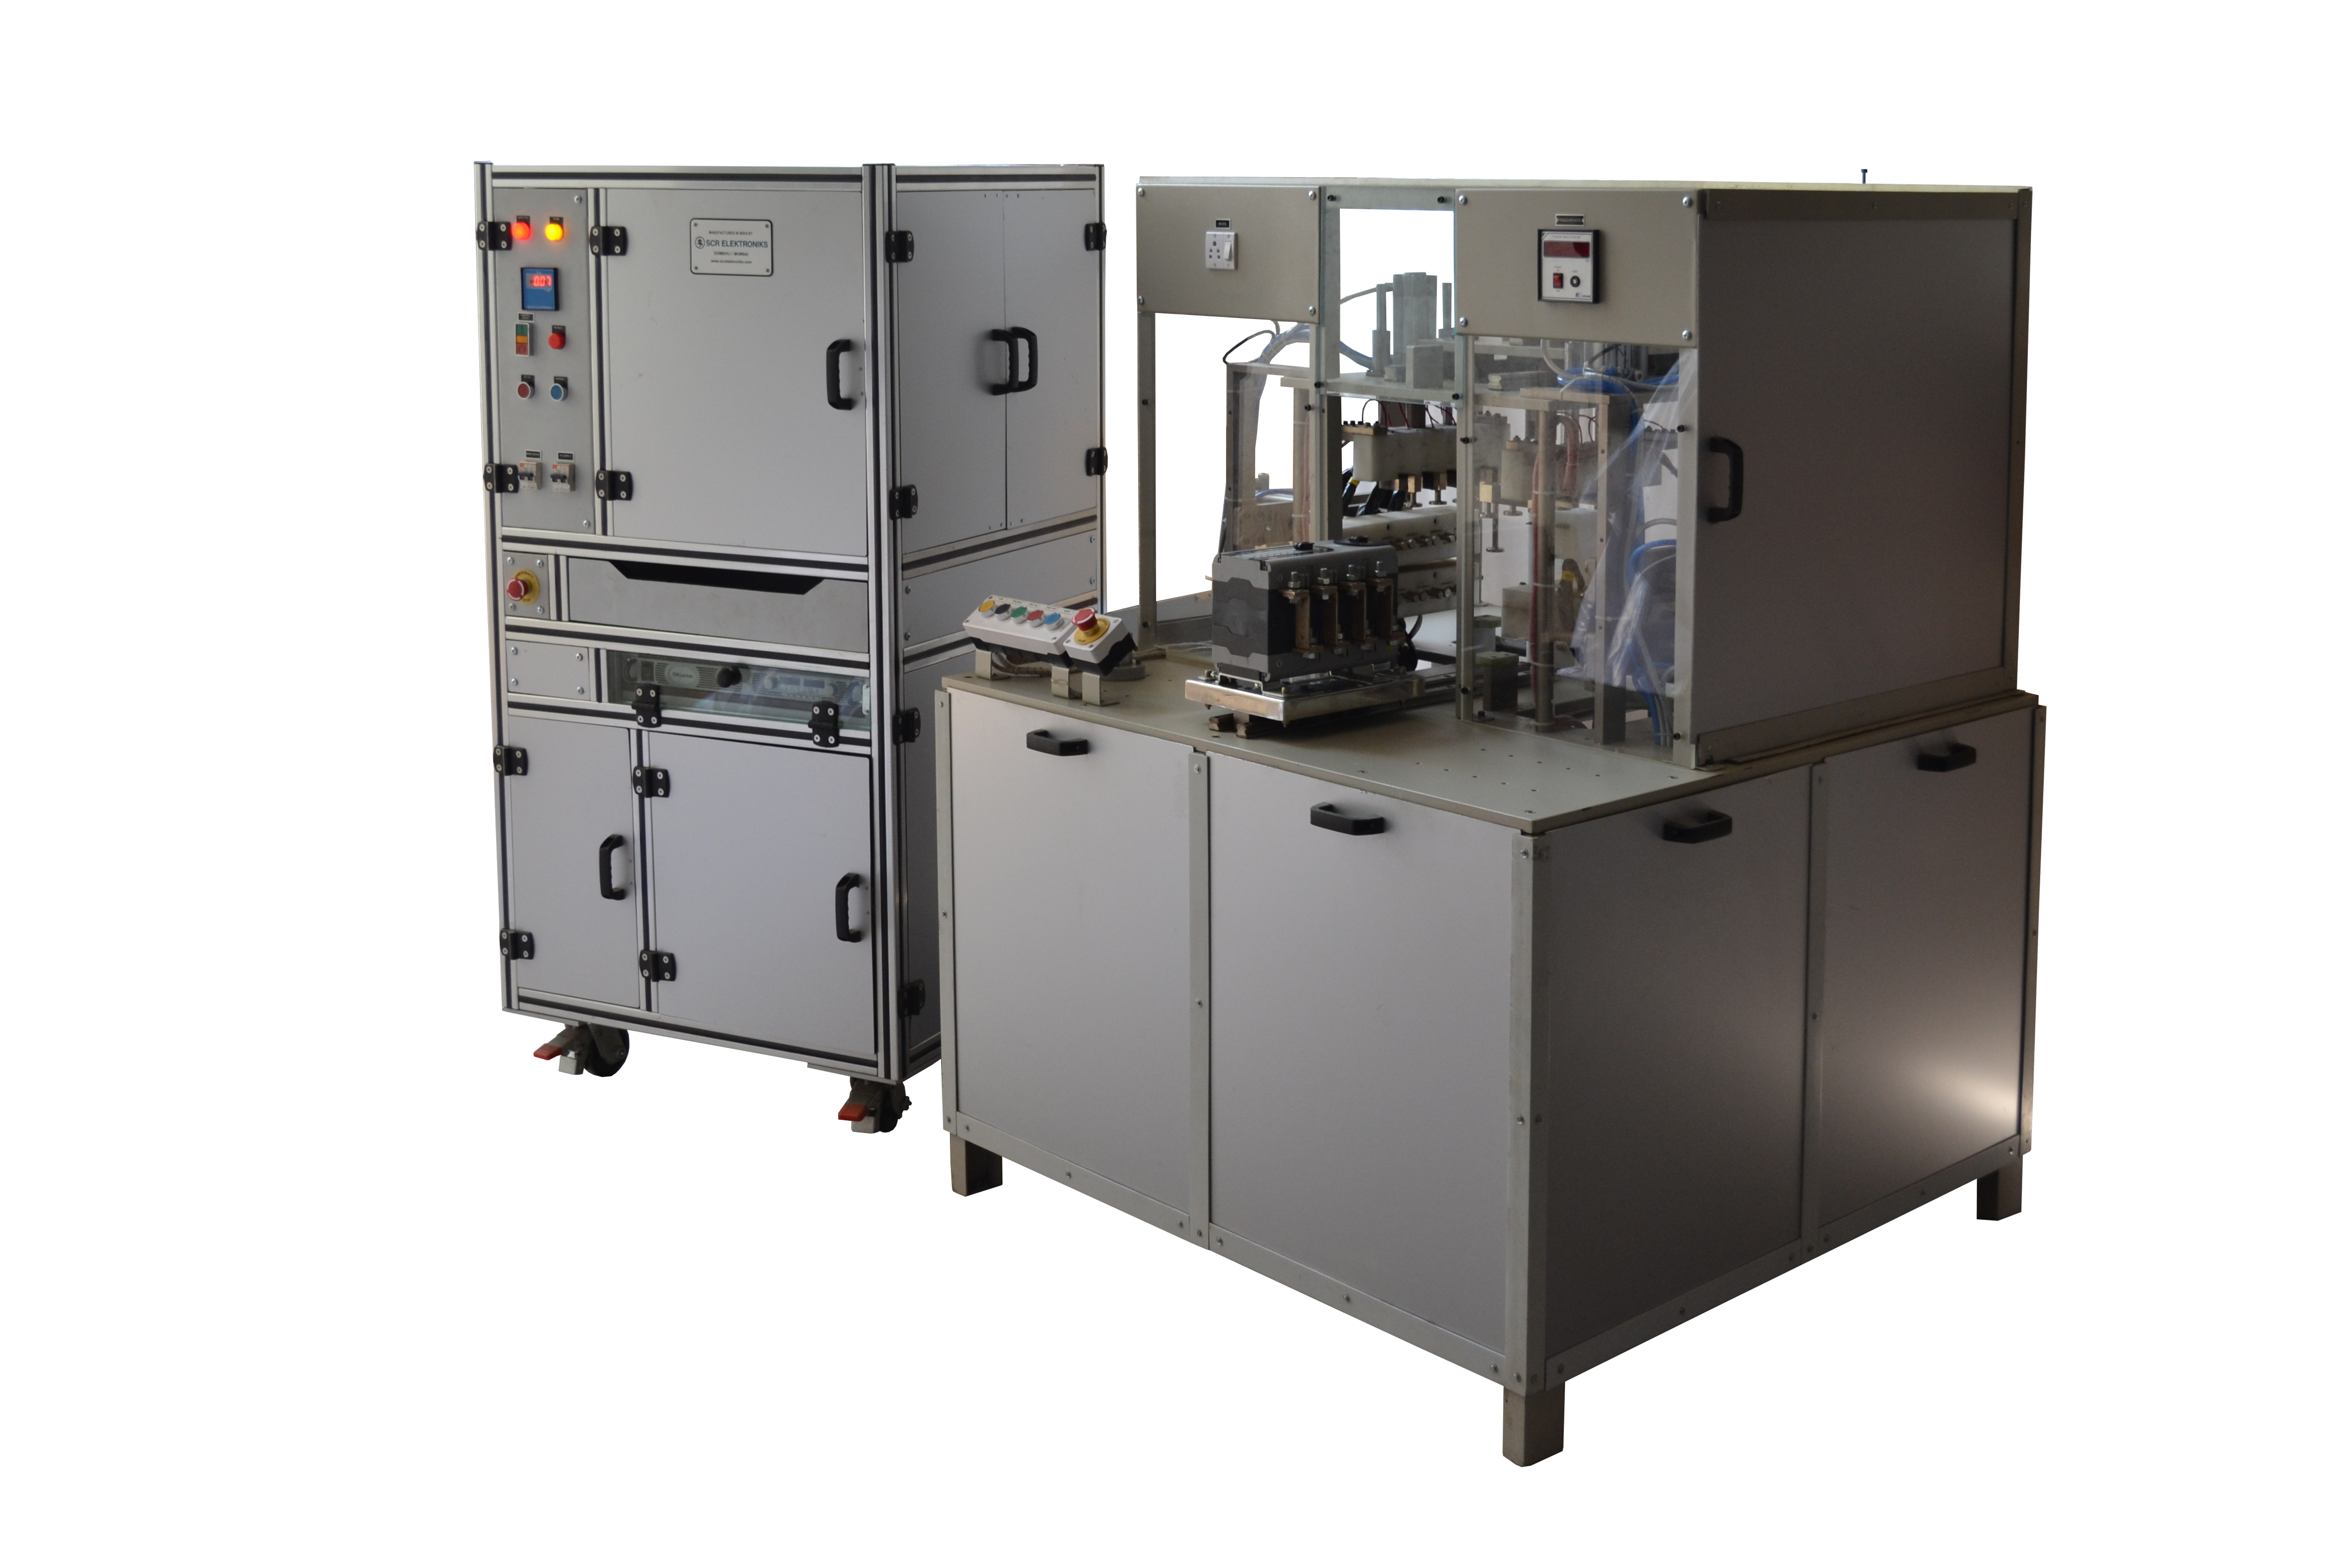 Hipot tester with Mechanical Electro-pneumatic operated test fixture jig